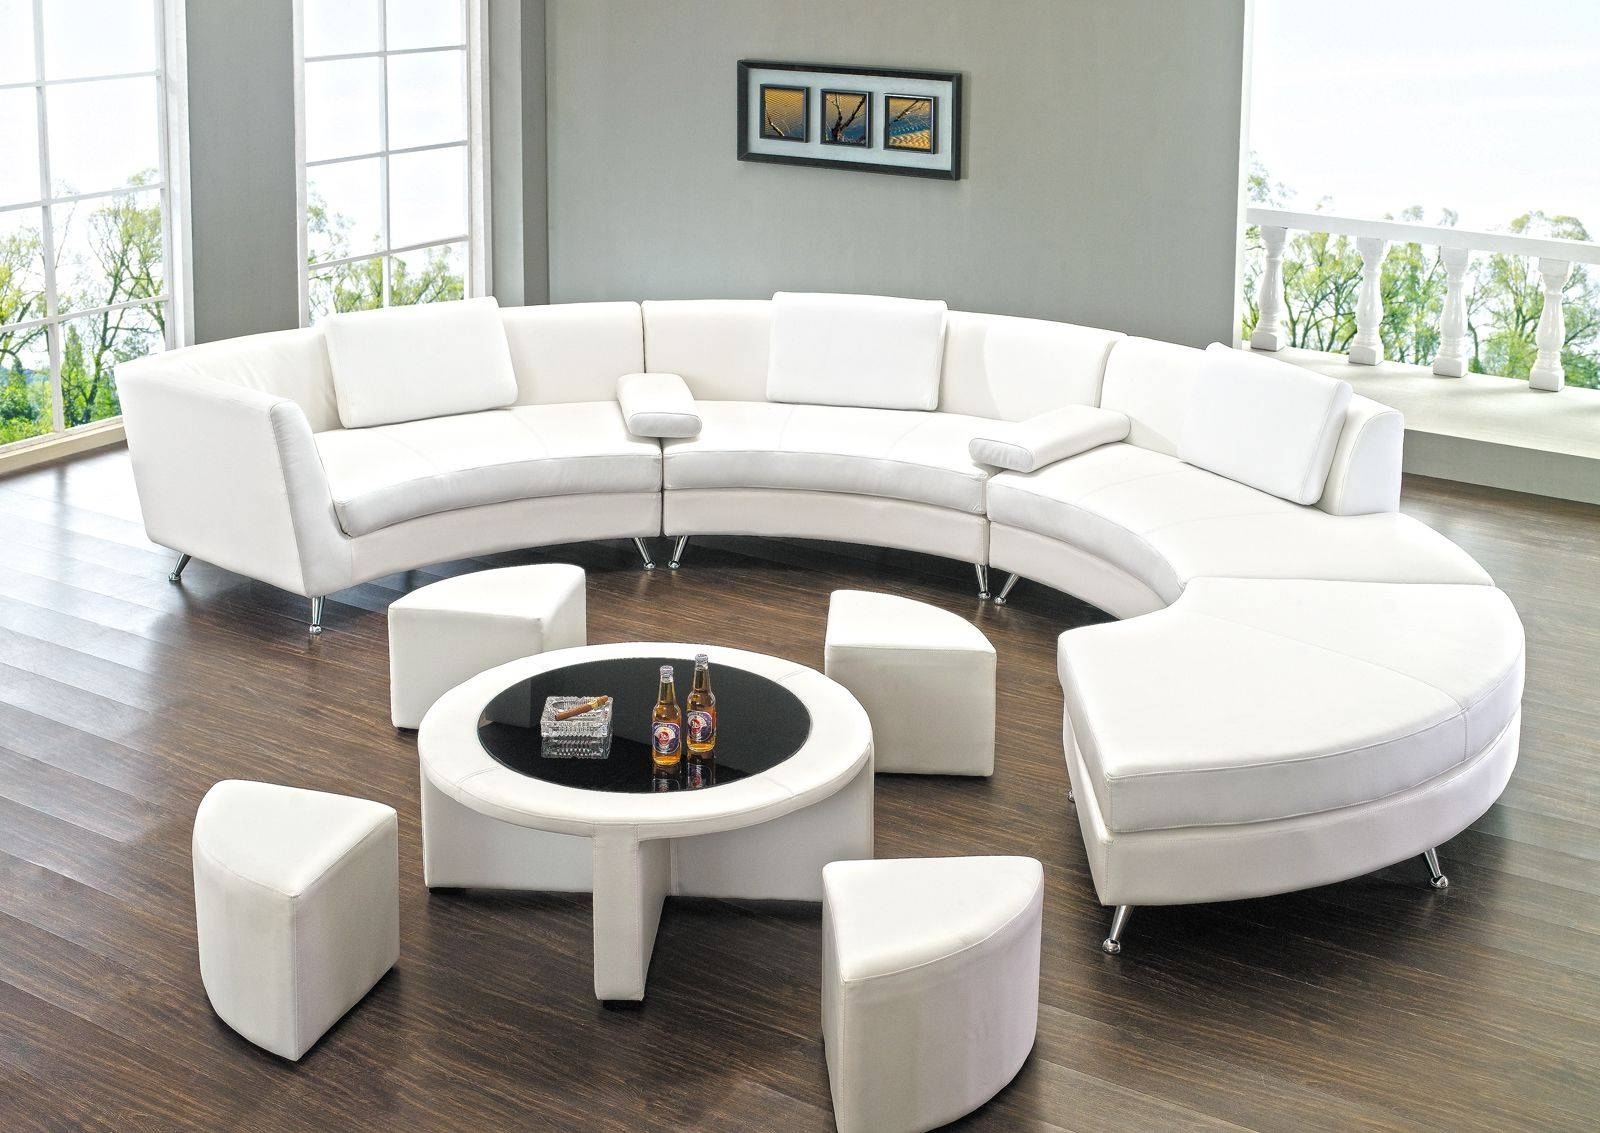 Round Sectional Sofa | Tehranmix Decoration Within Circular Sectional Sofa (View 24 of 30)